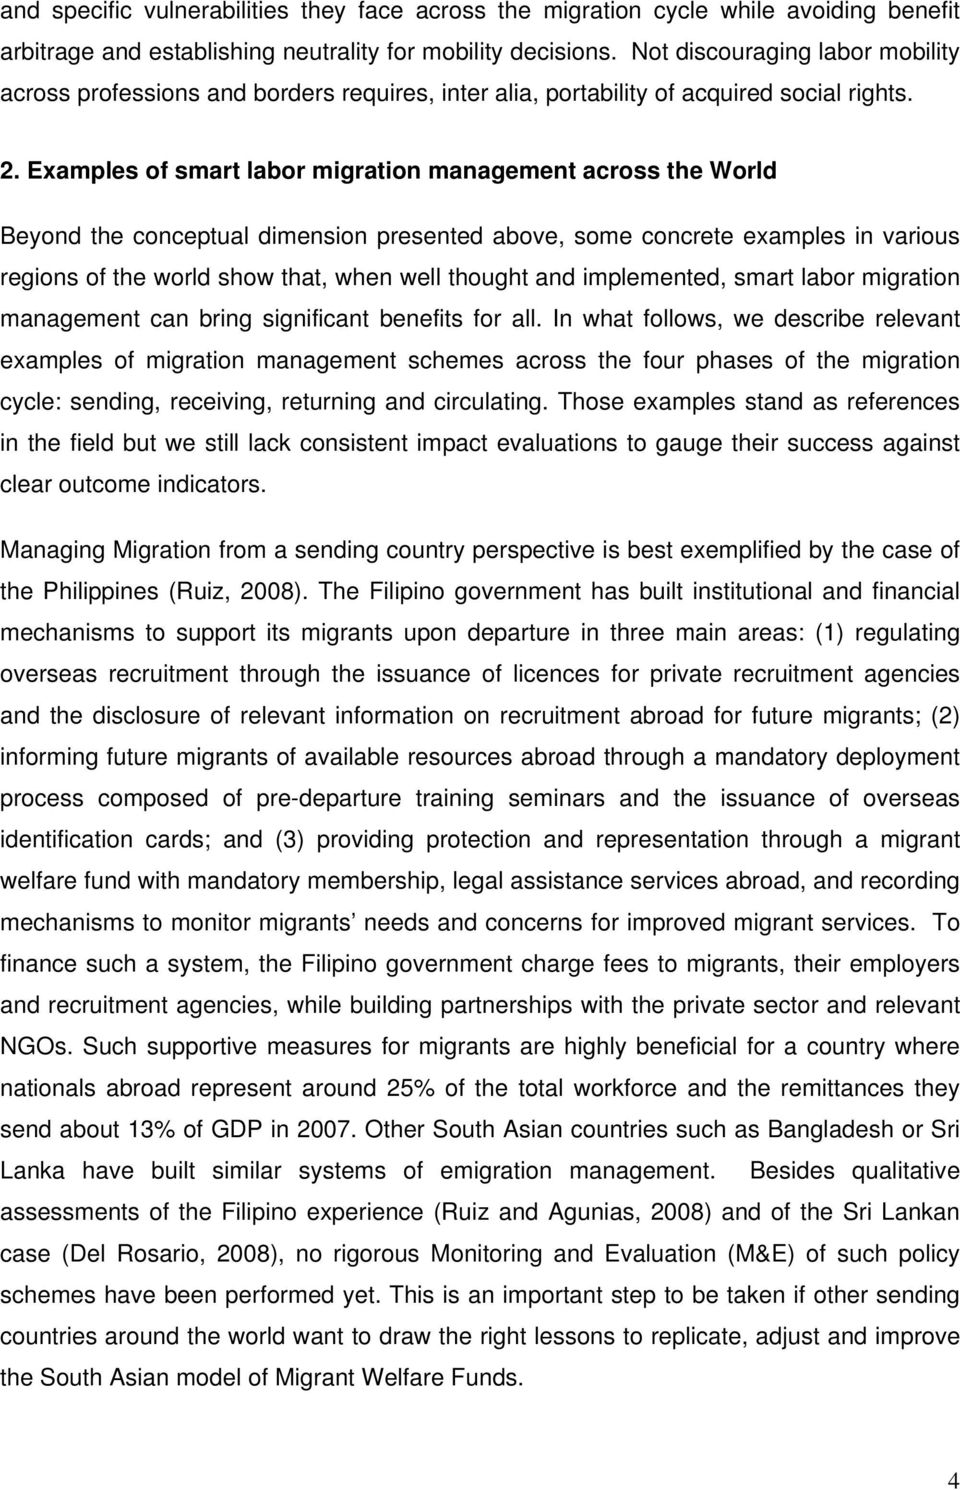 Examples of smart labor migration management across the World Beyond the conceptual dimension presented above, some concrete examples in various regions of the world show that, when well thought and